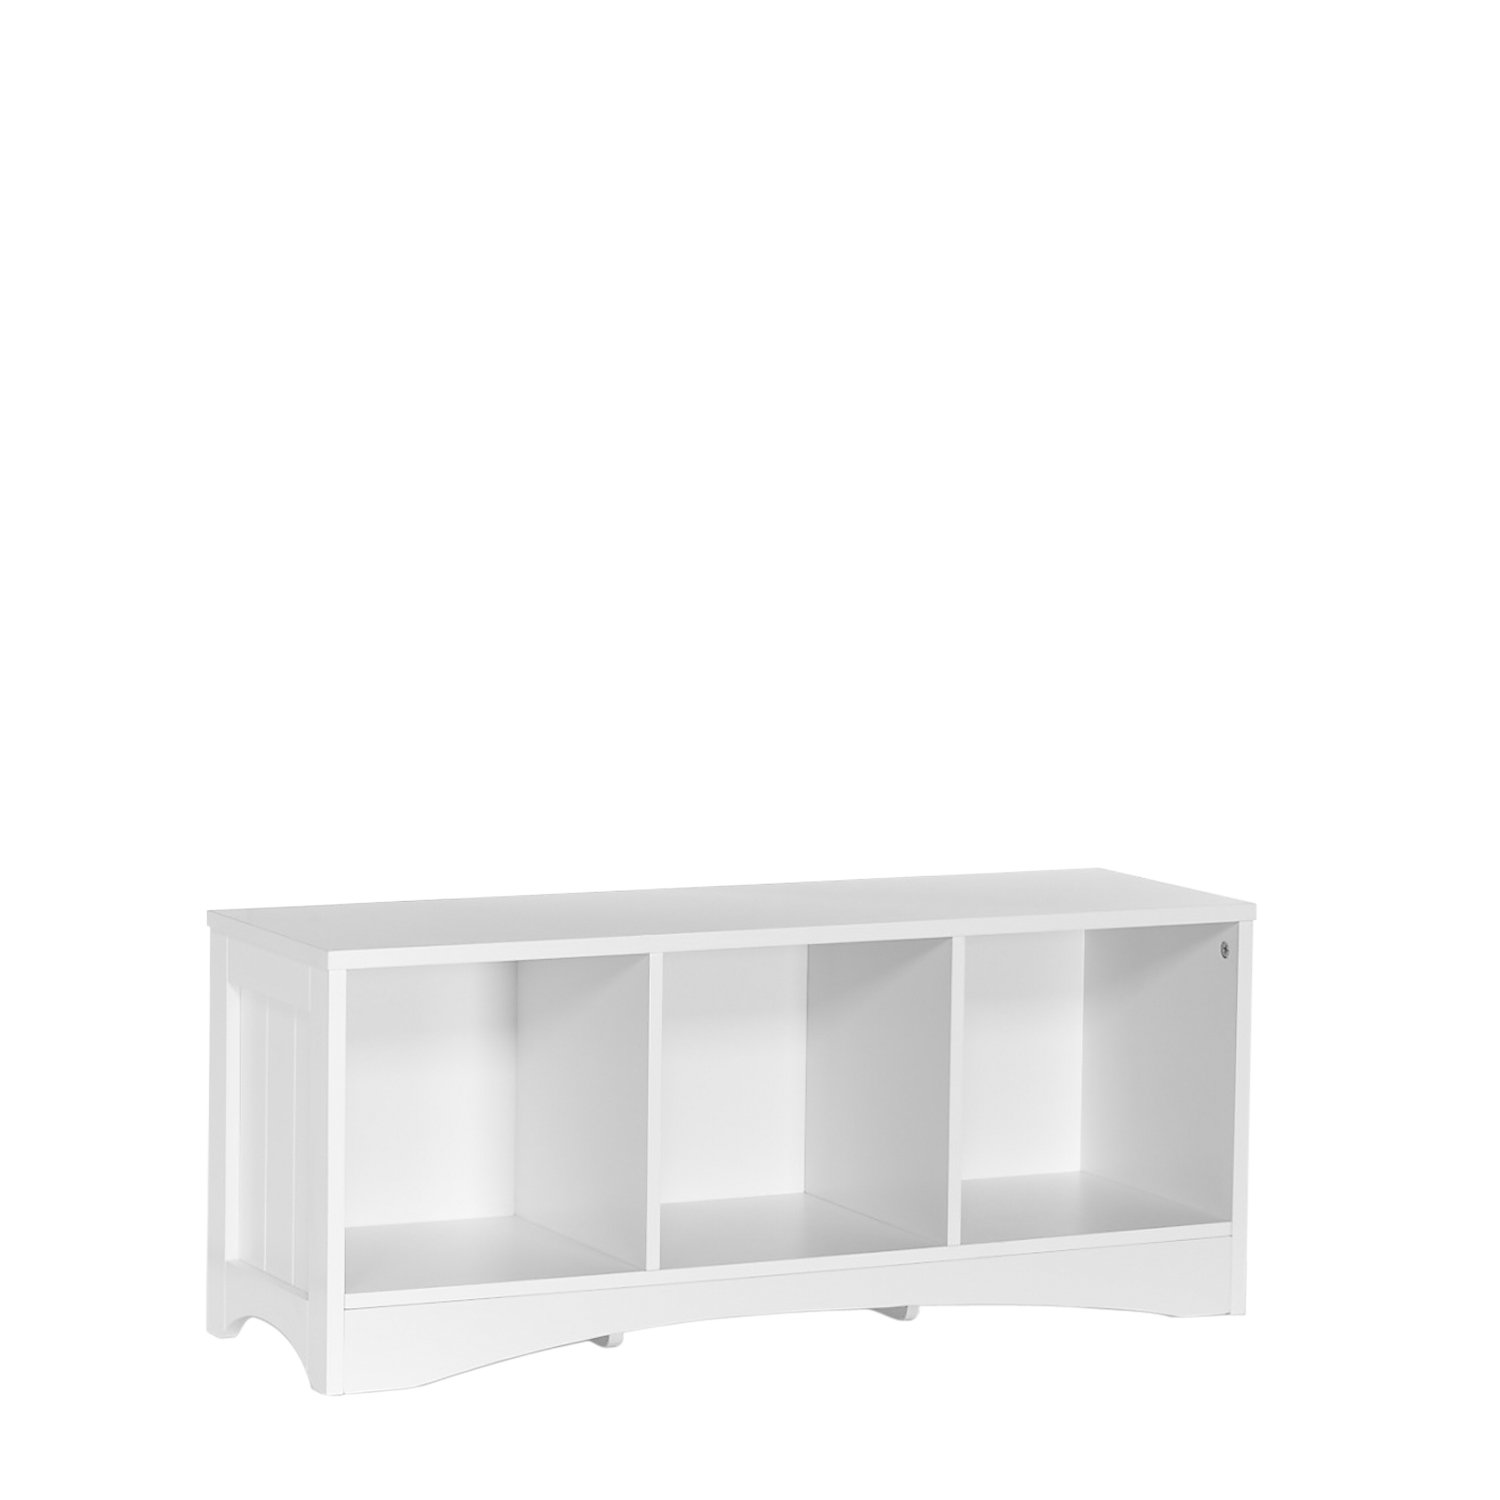 RiverRidge 02-023 Bench with 3 Cubbies for Kids, White